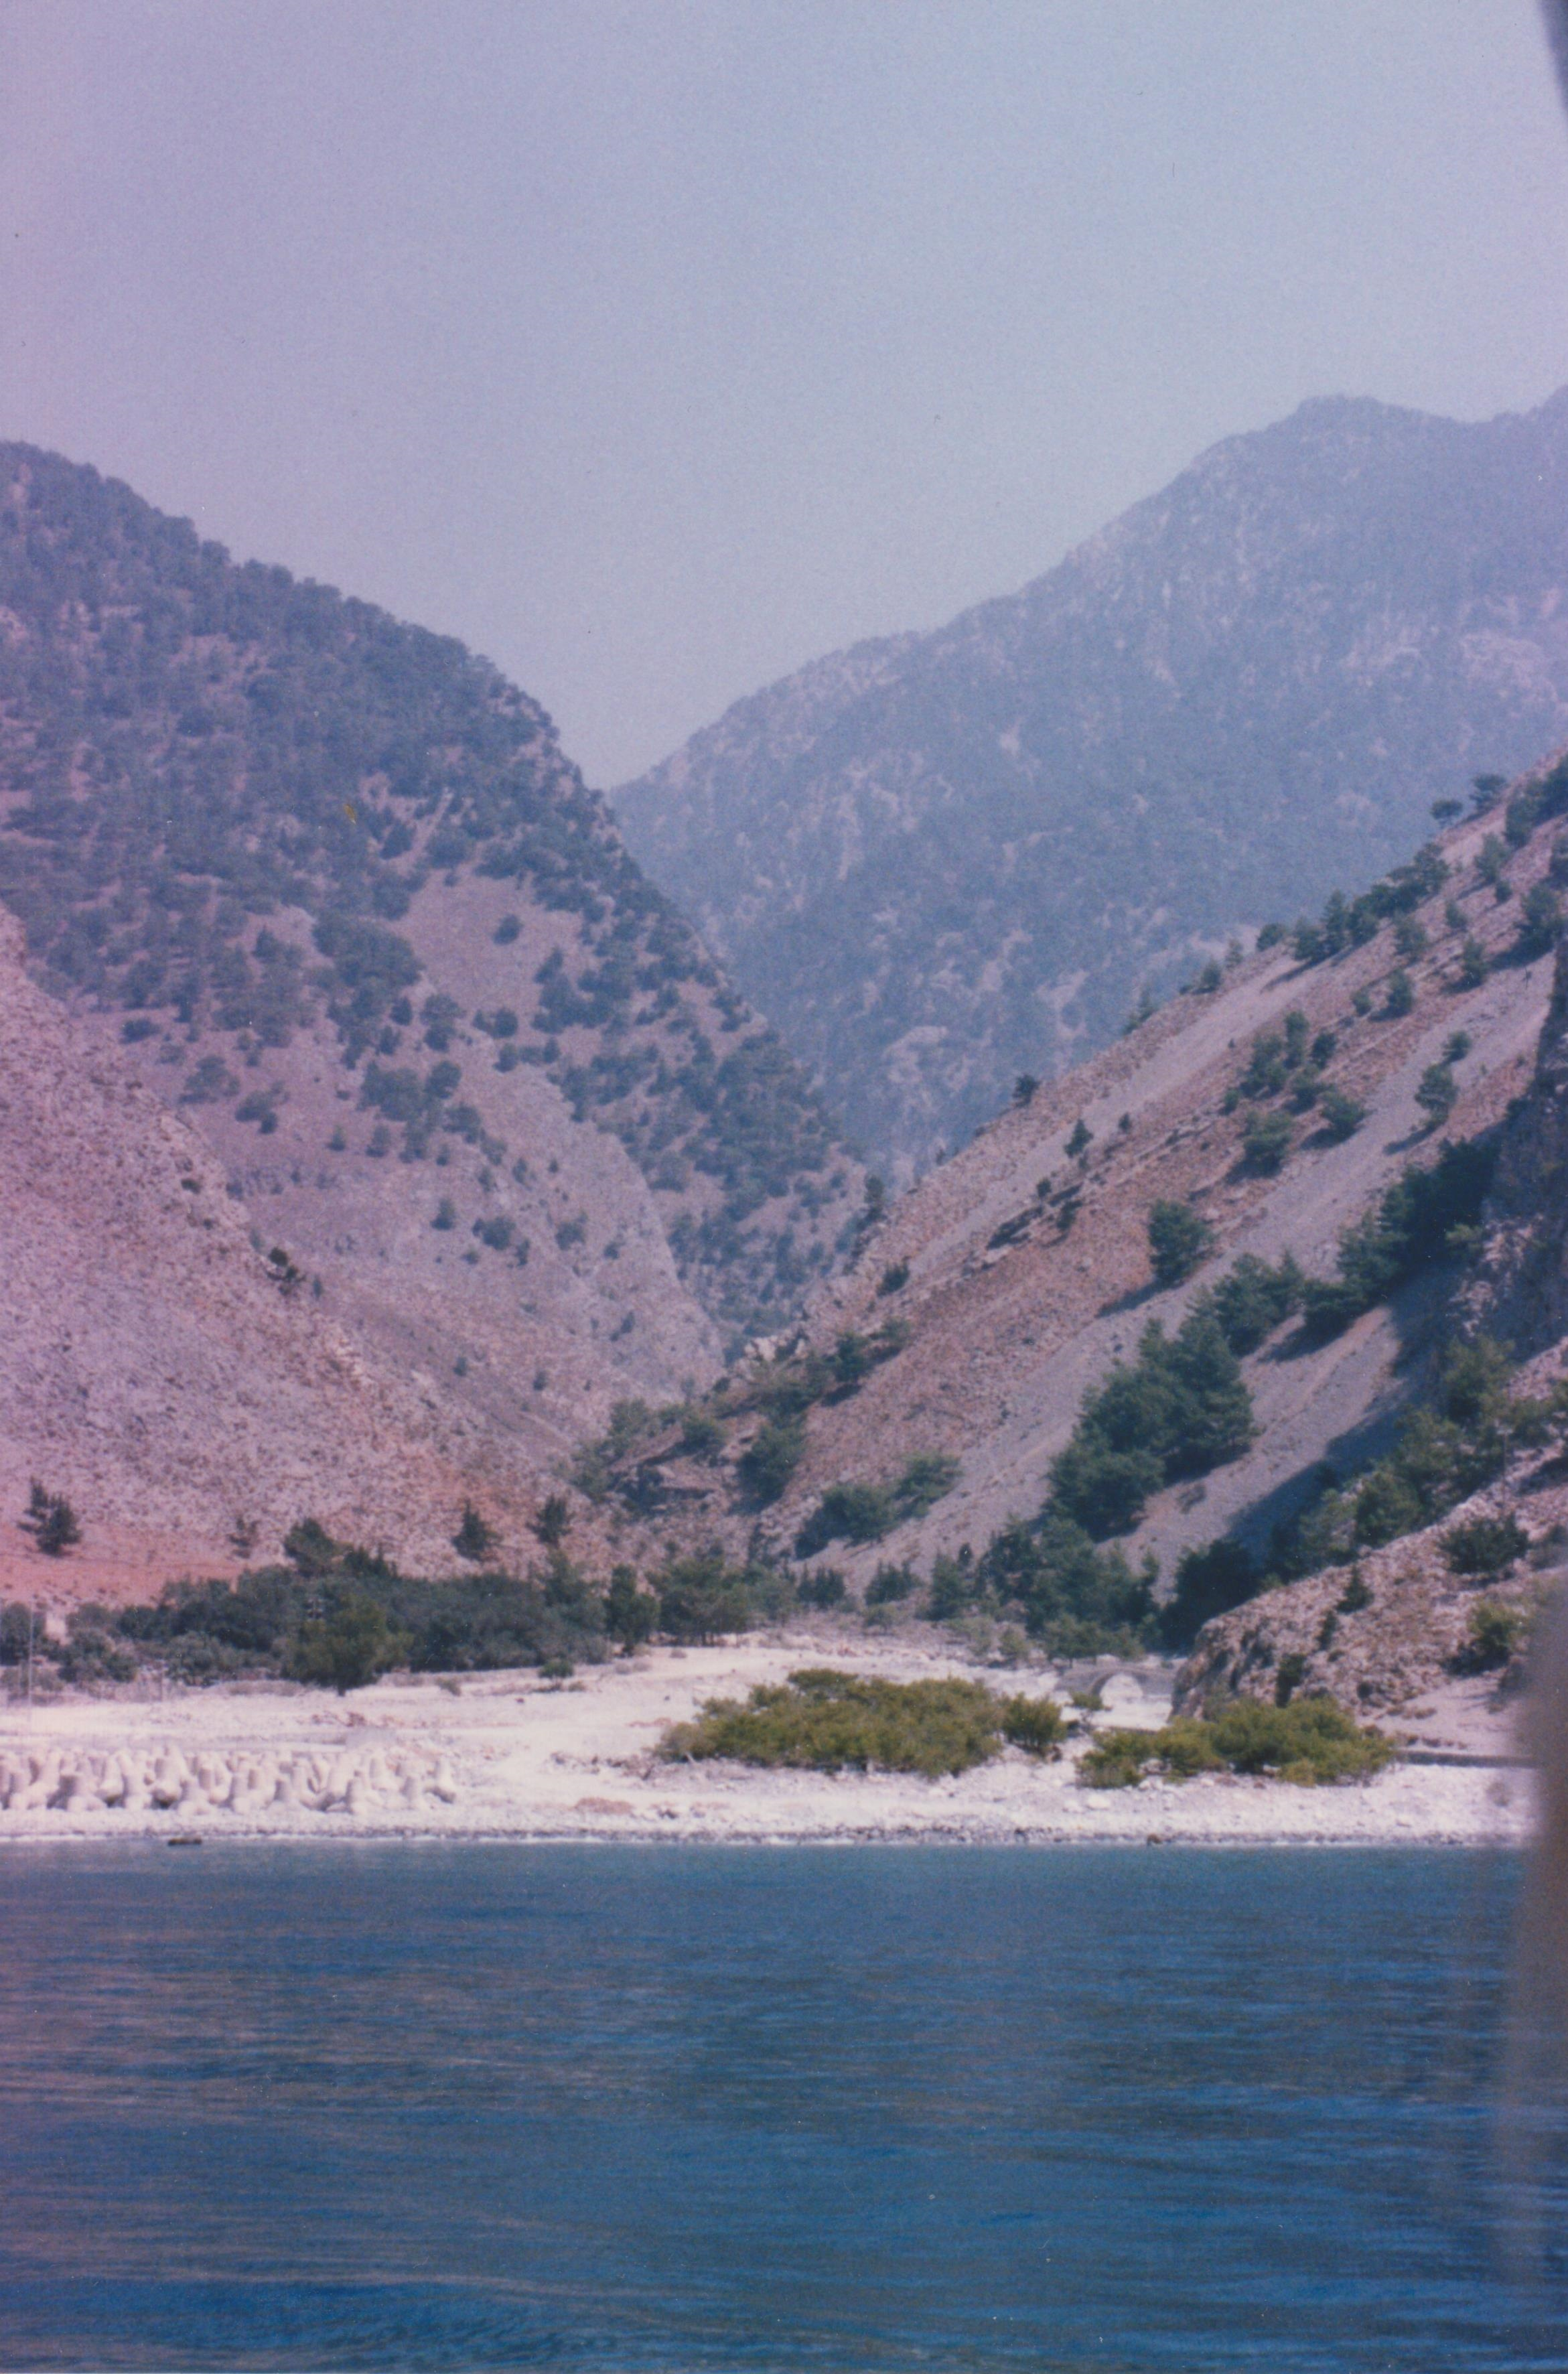 A picture of the gorge from the sea